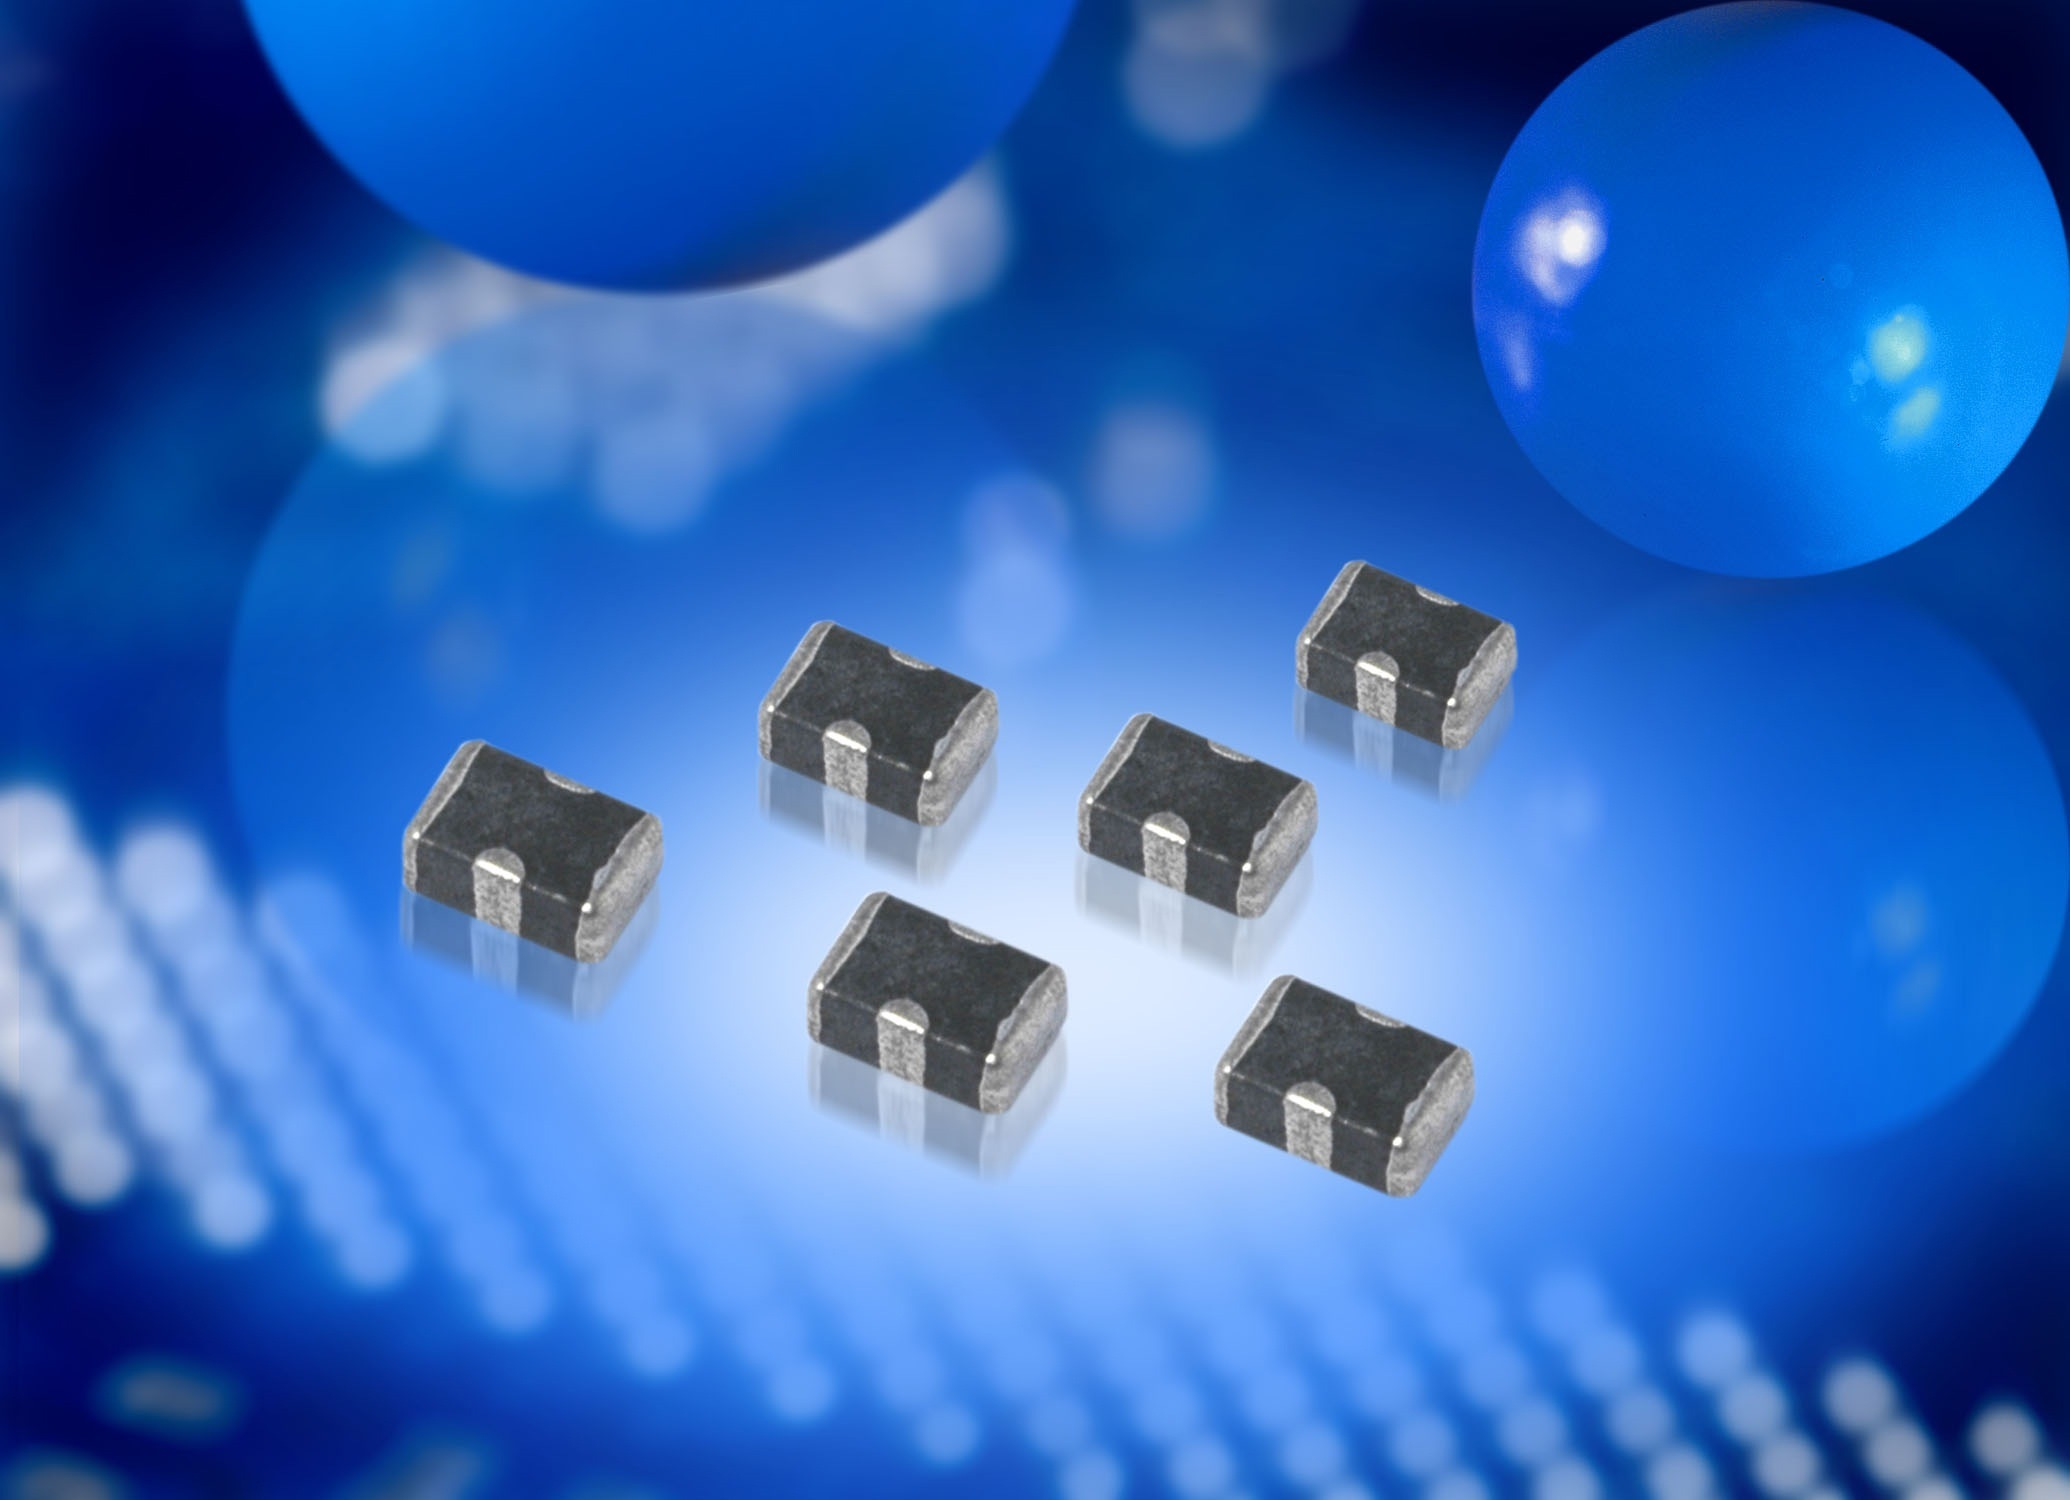 Avx Adds 26vdc Components To Its Proven Dual Function